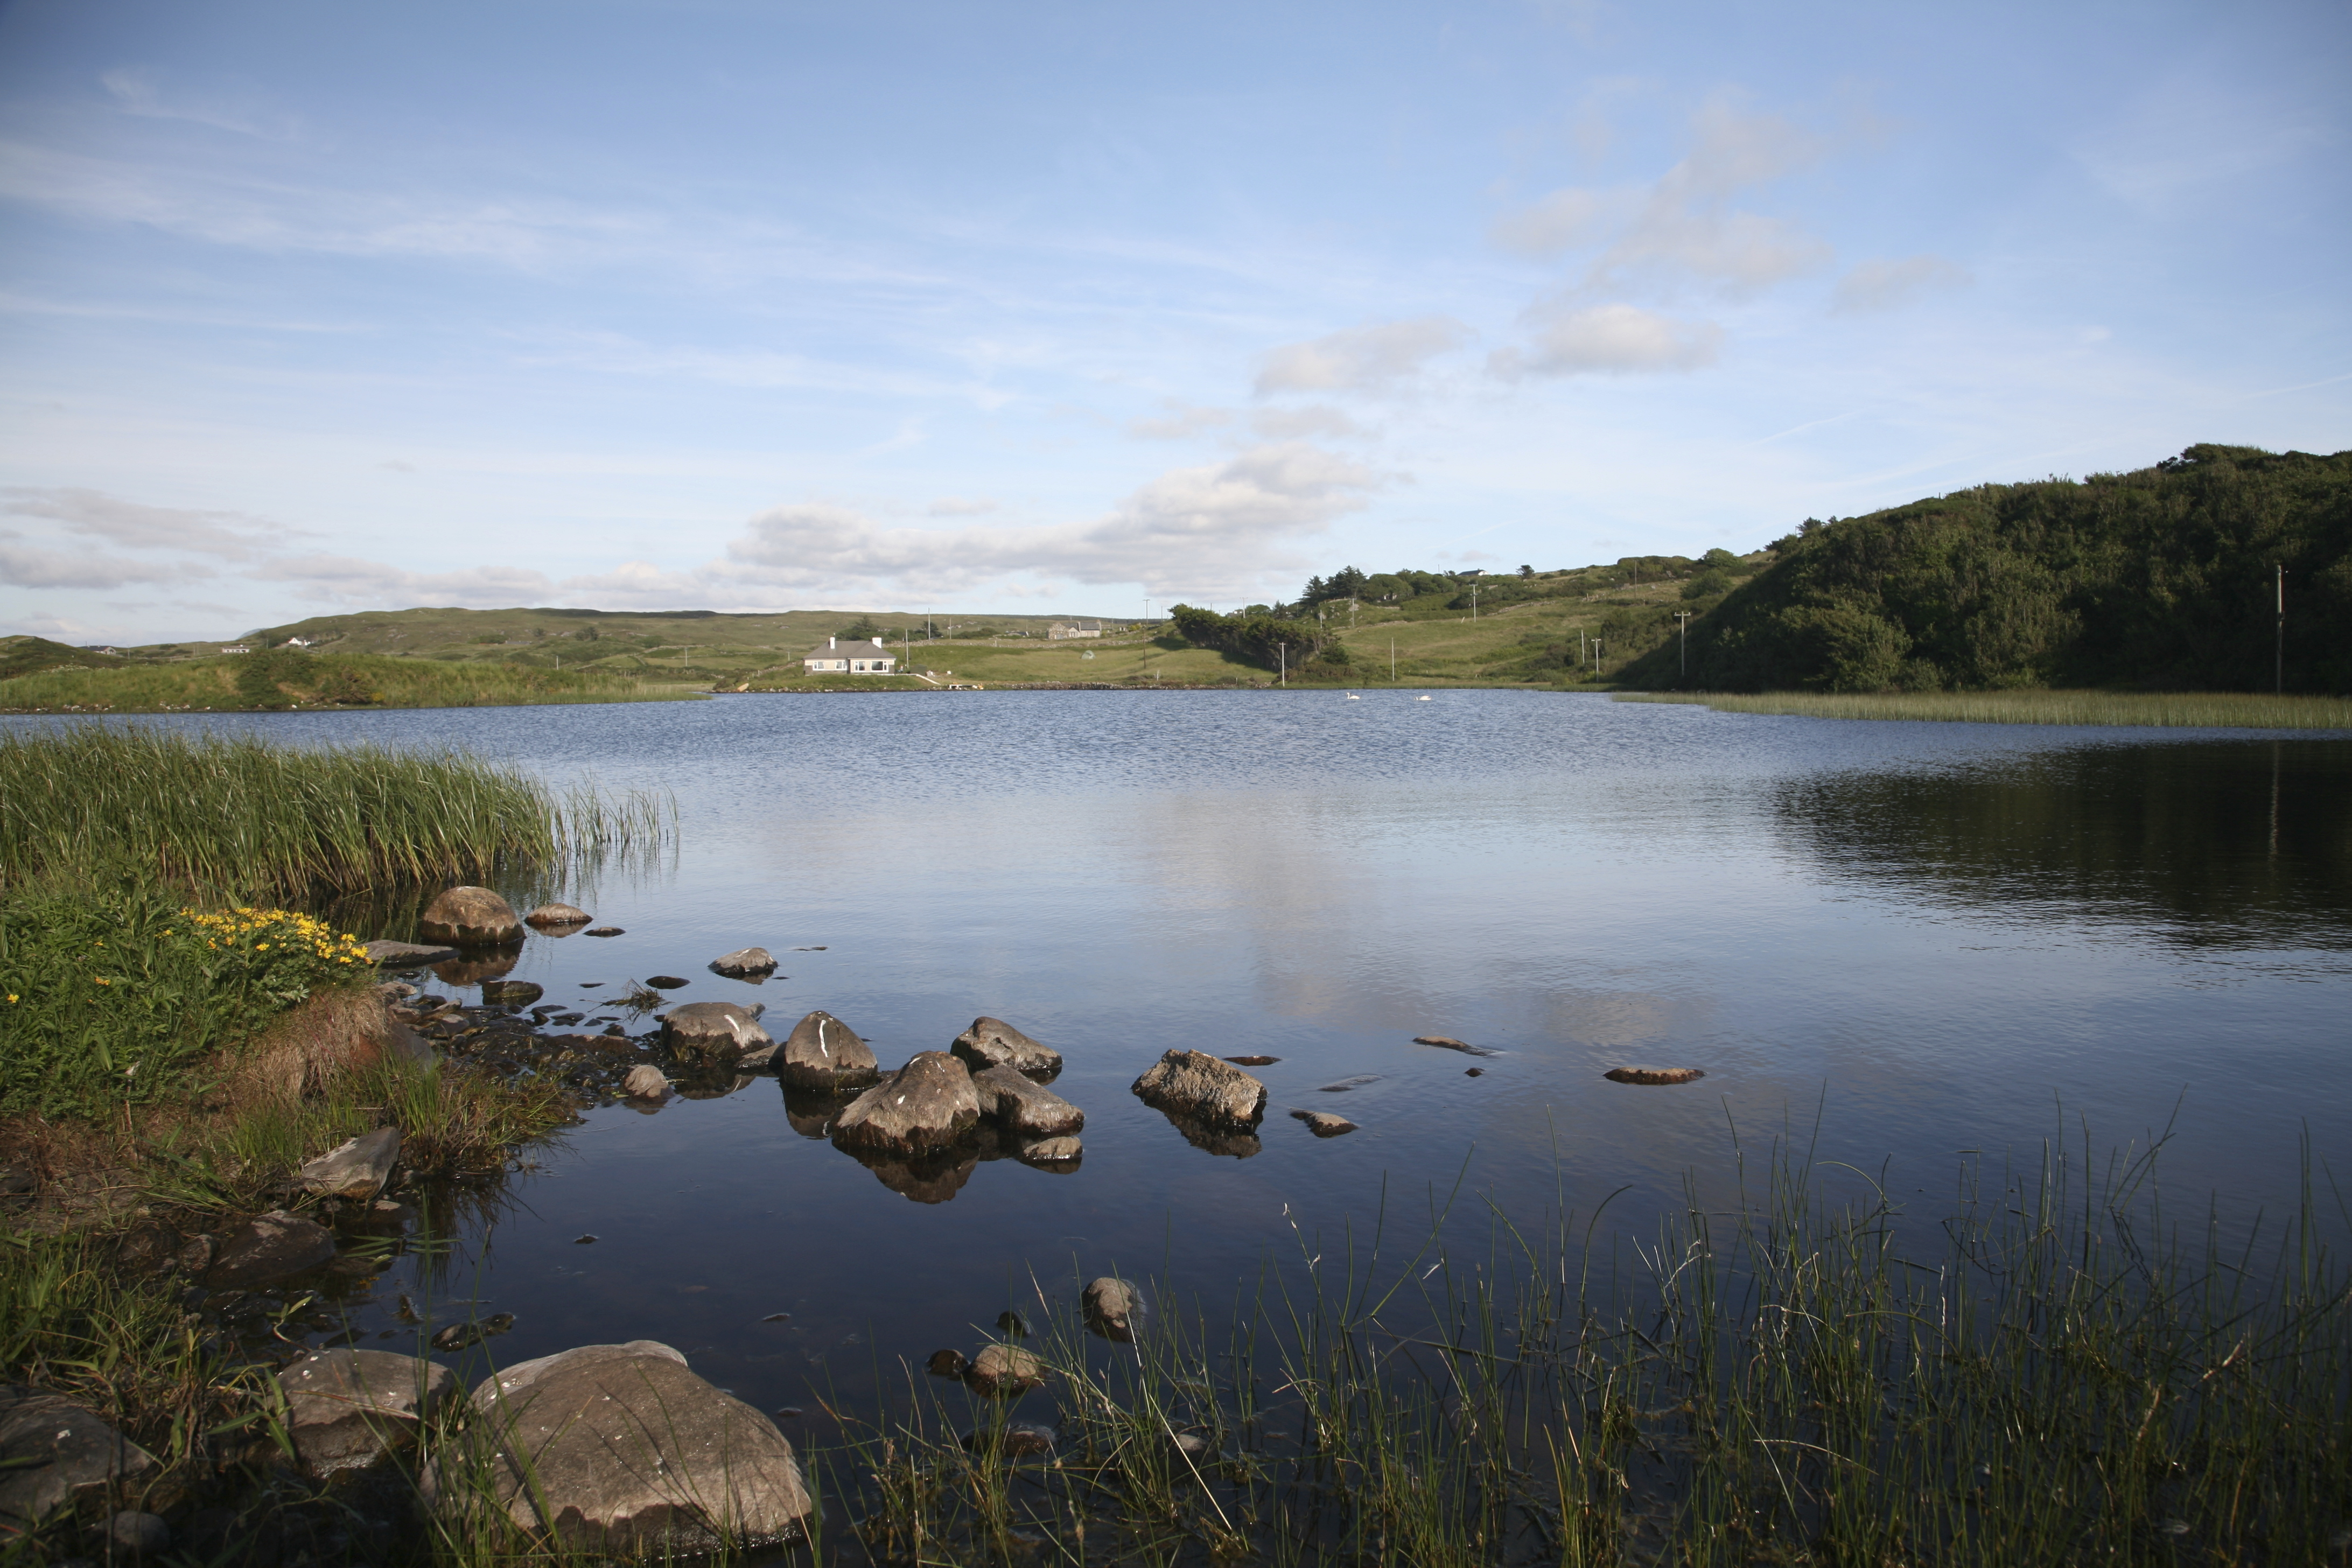 Northern Ireland is endowed with many lakes